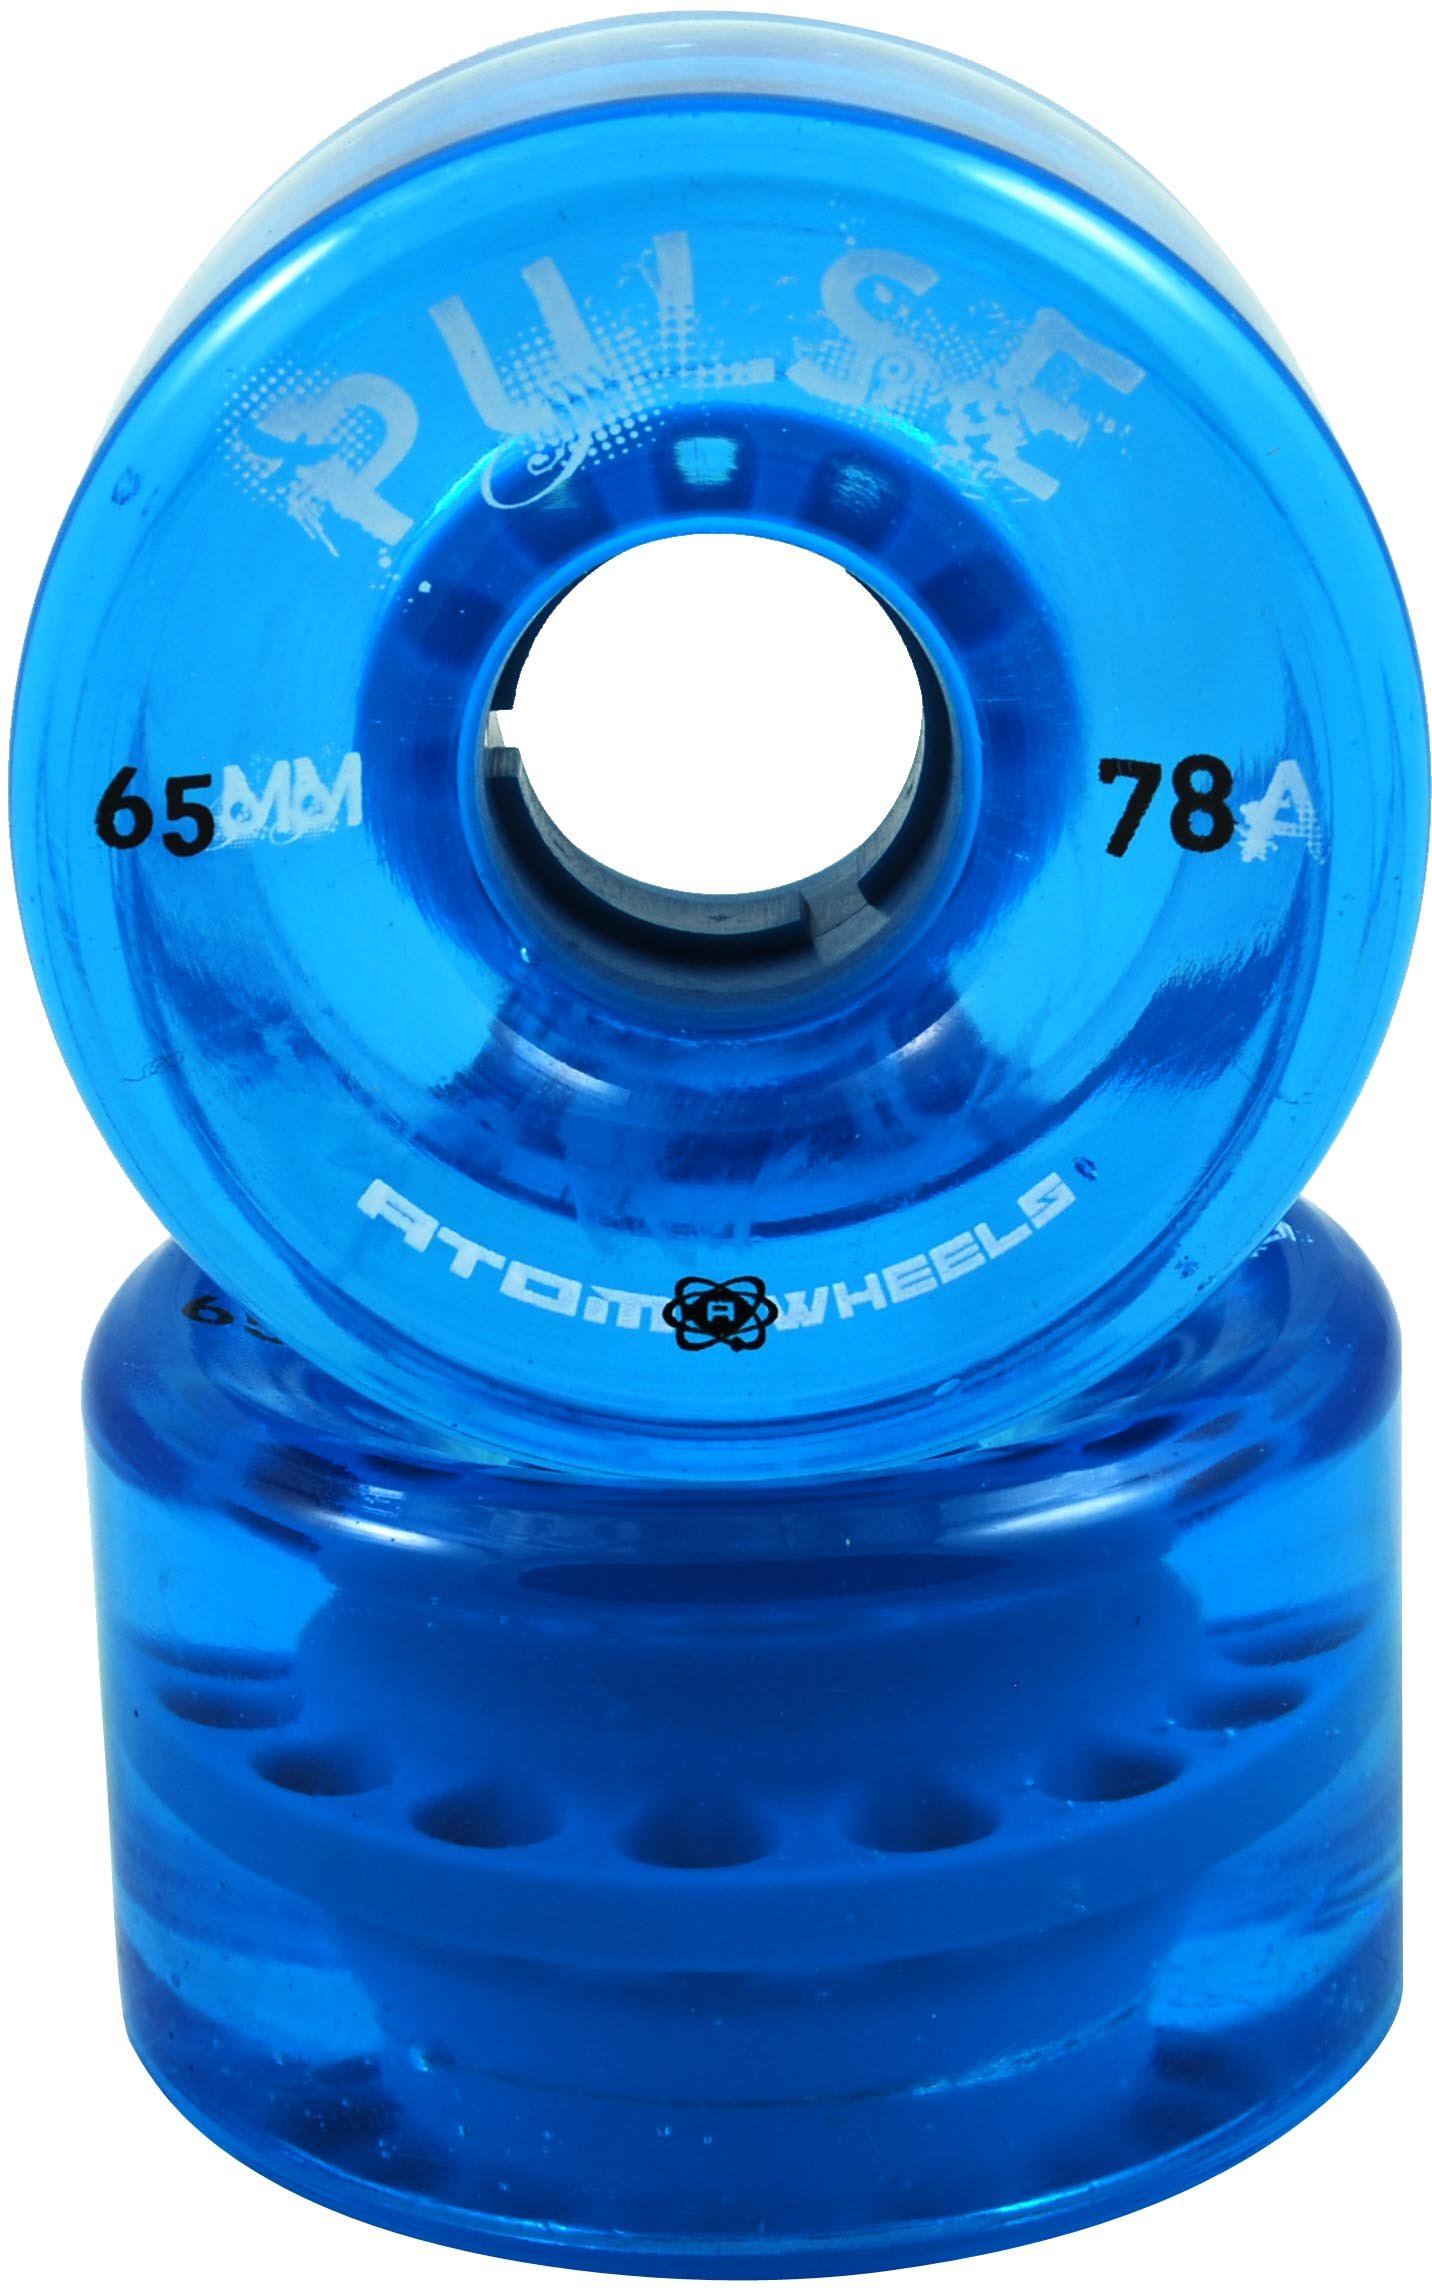 Atom Skates Pulse Blue Outdoor Quad Roller Skate Wheels Set of 4